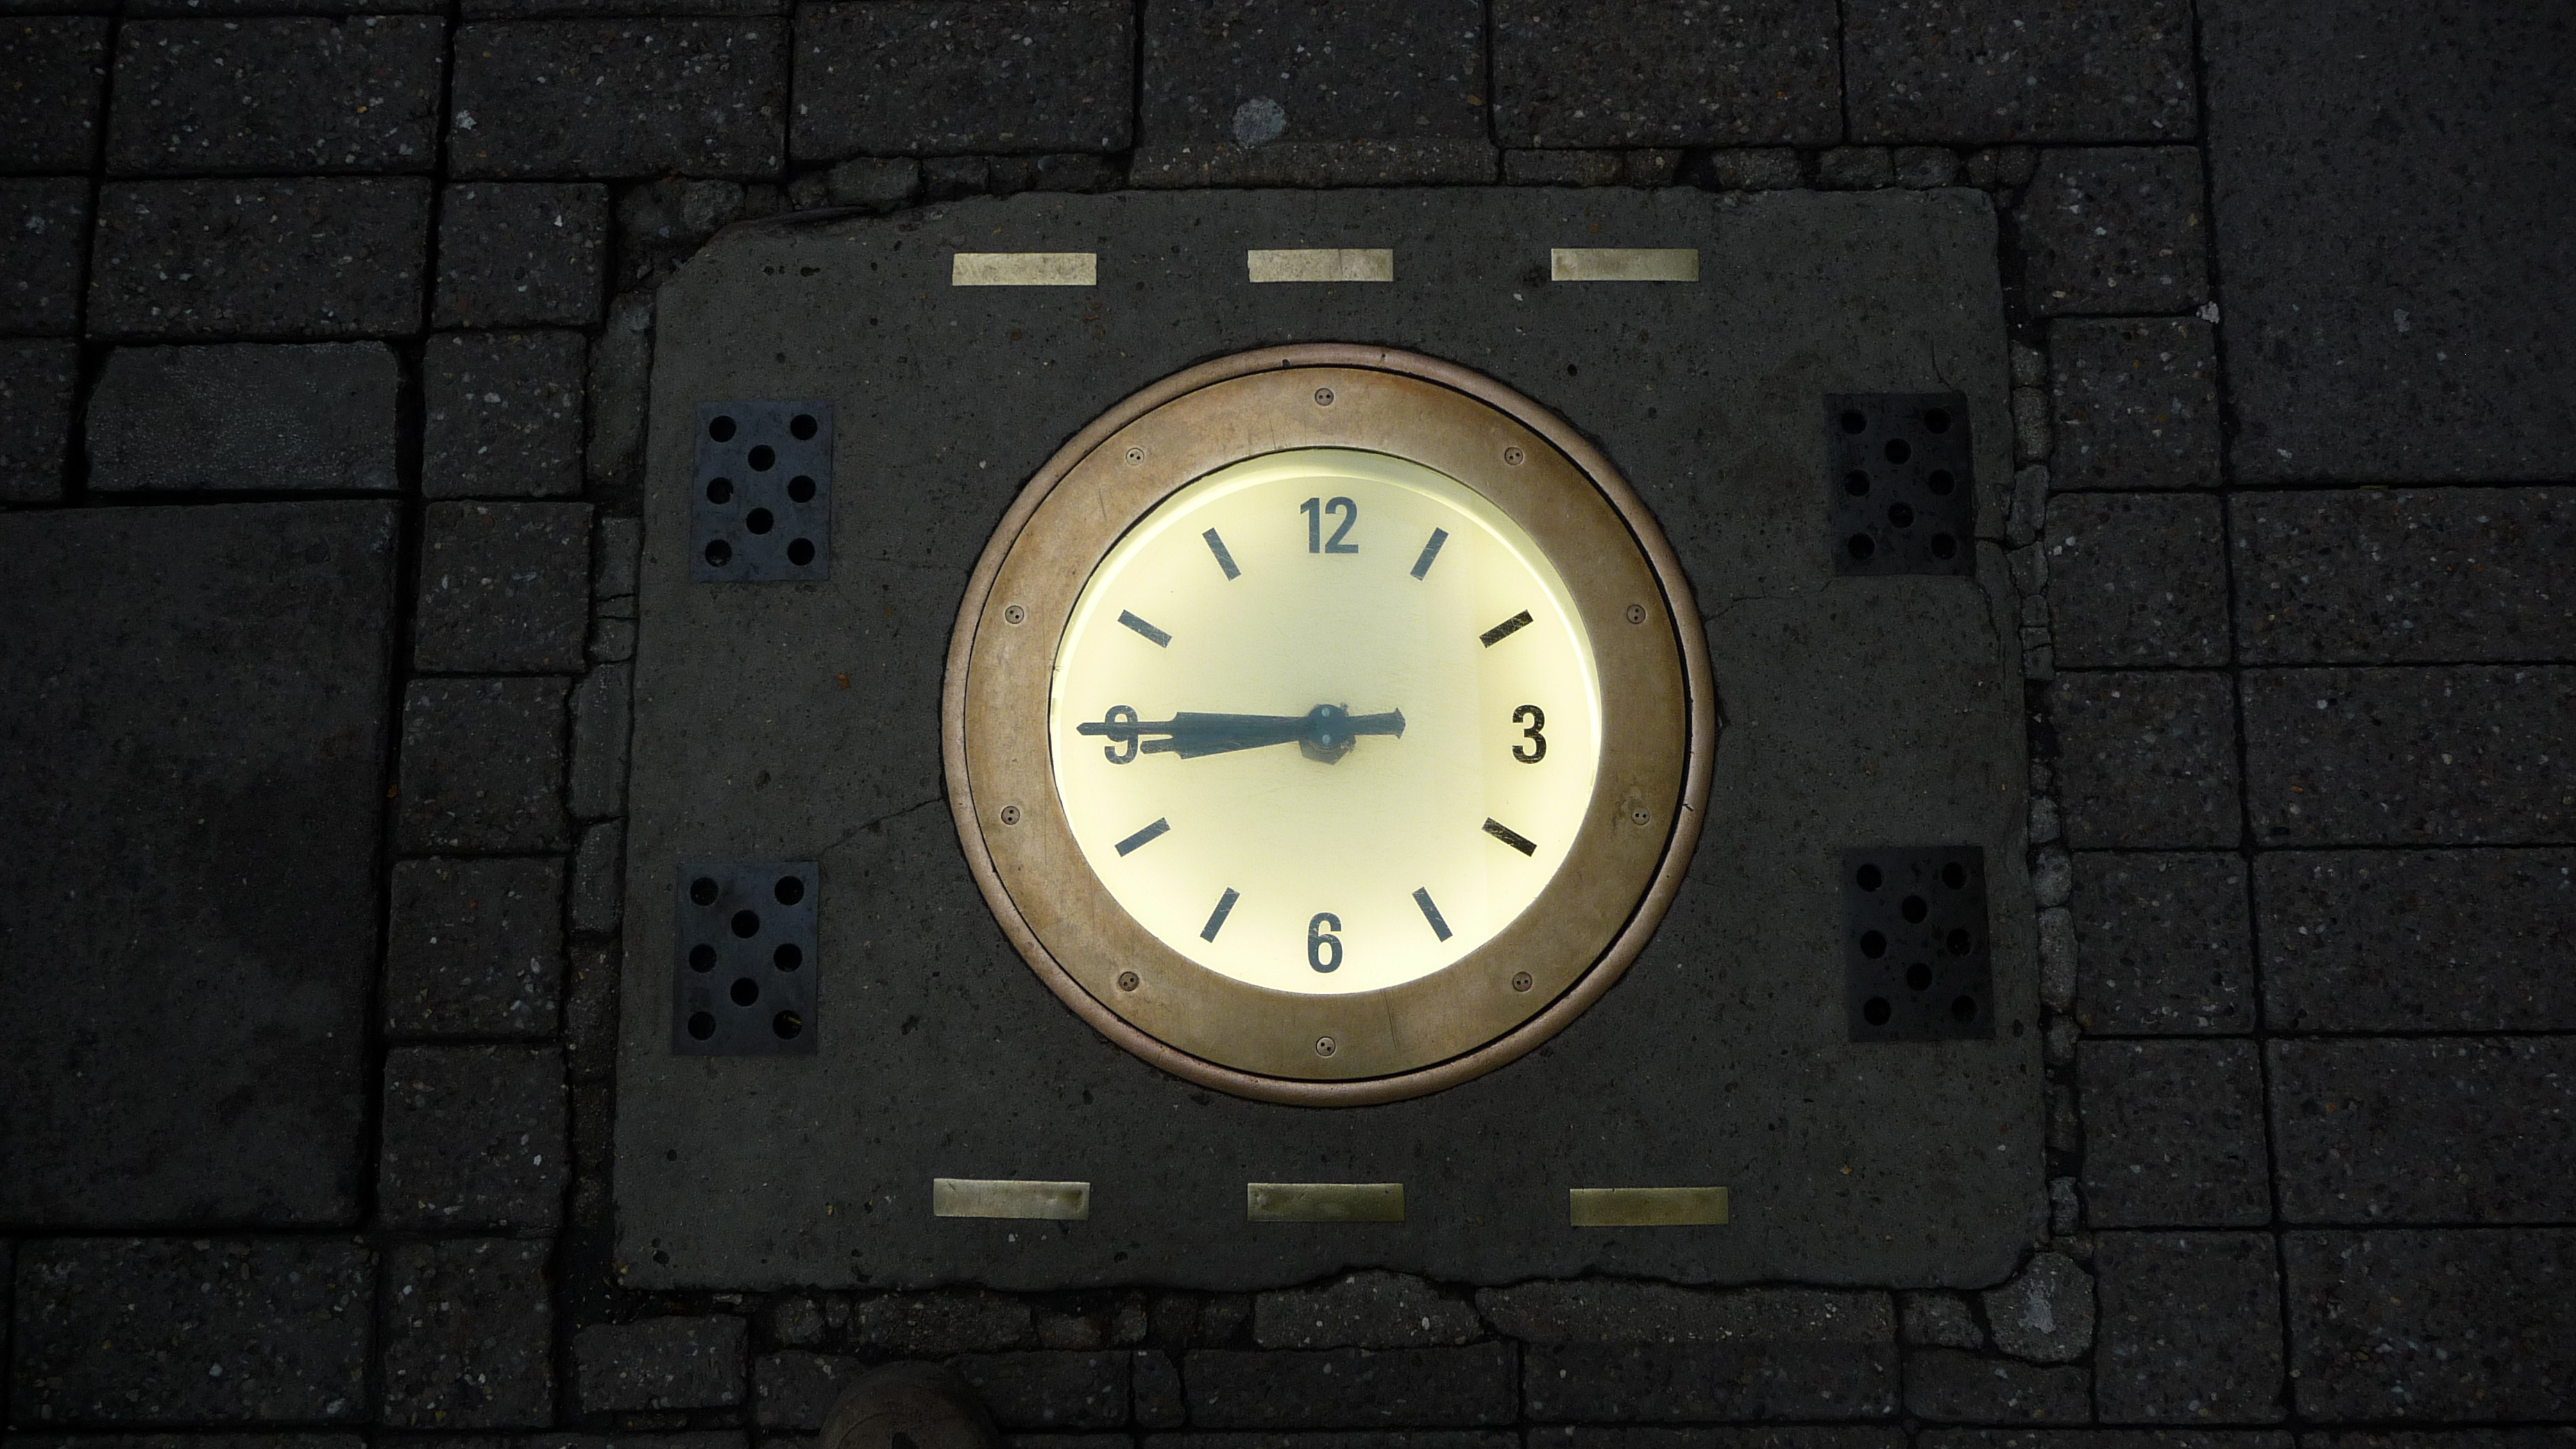 Clock built into pavement